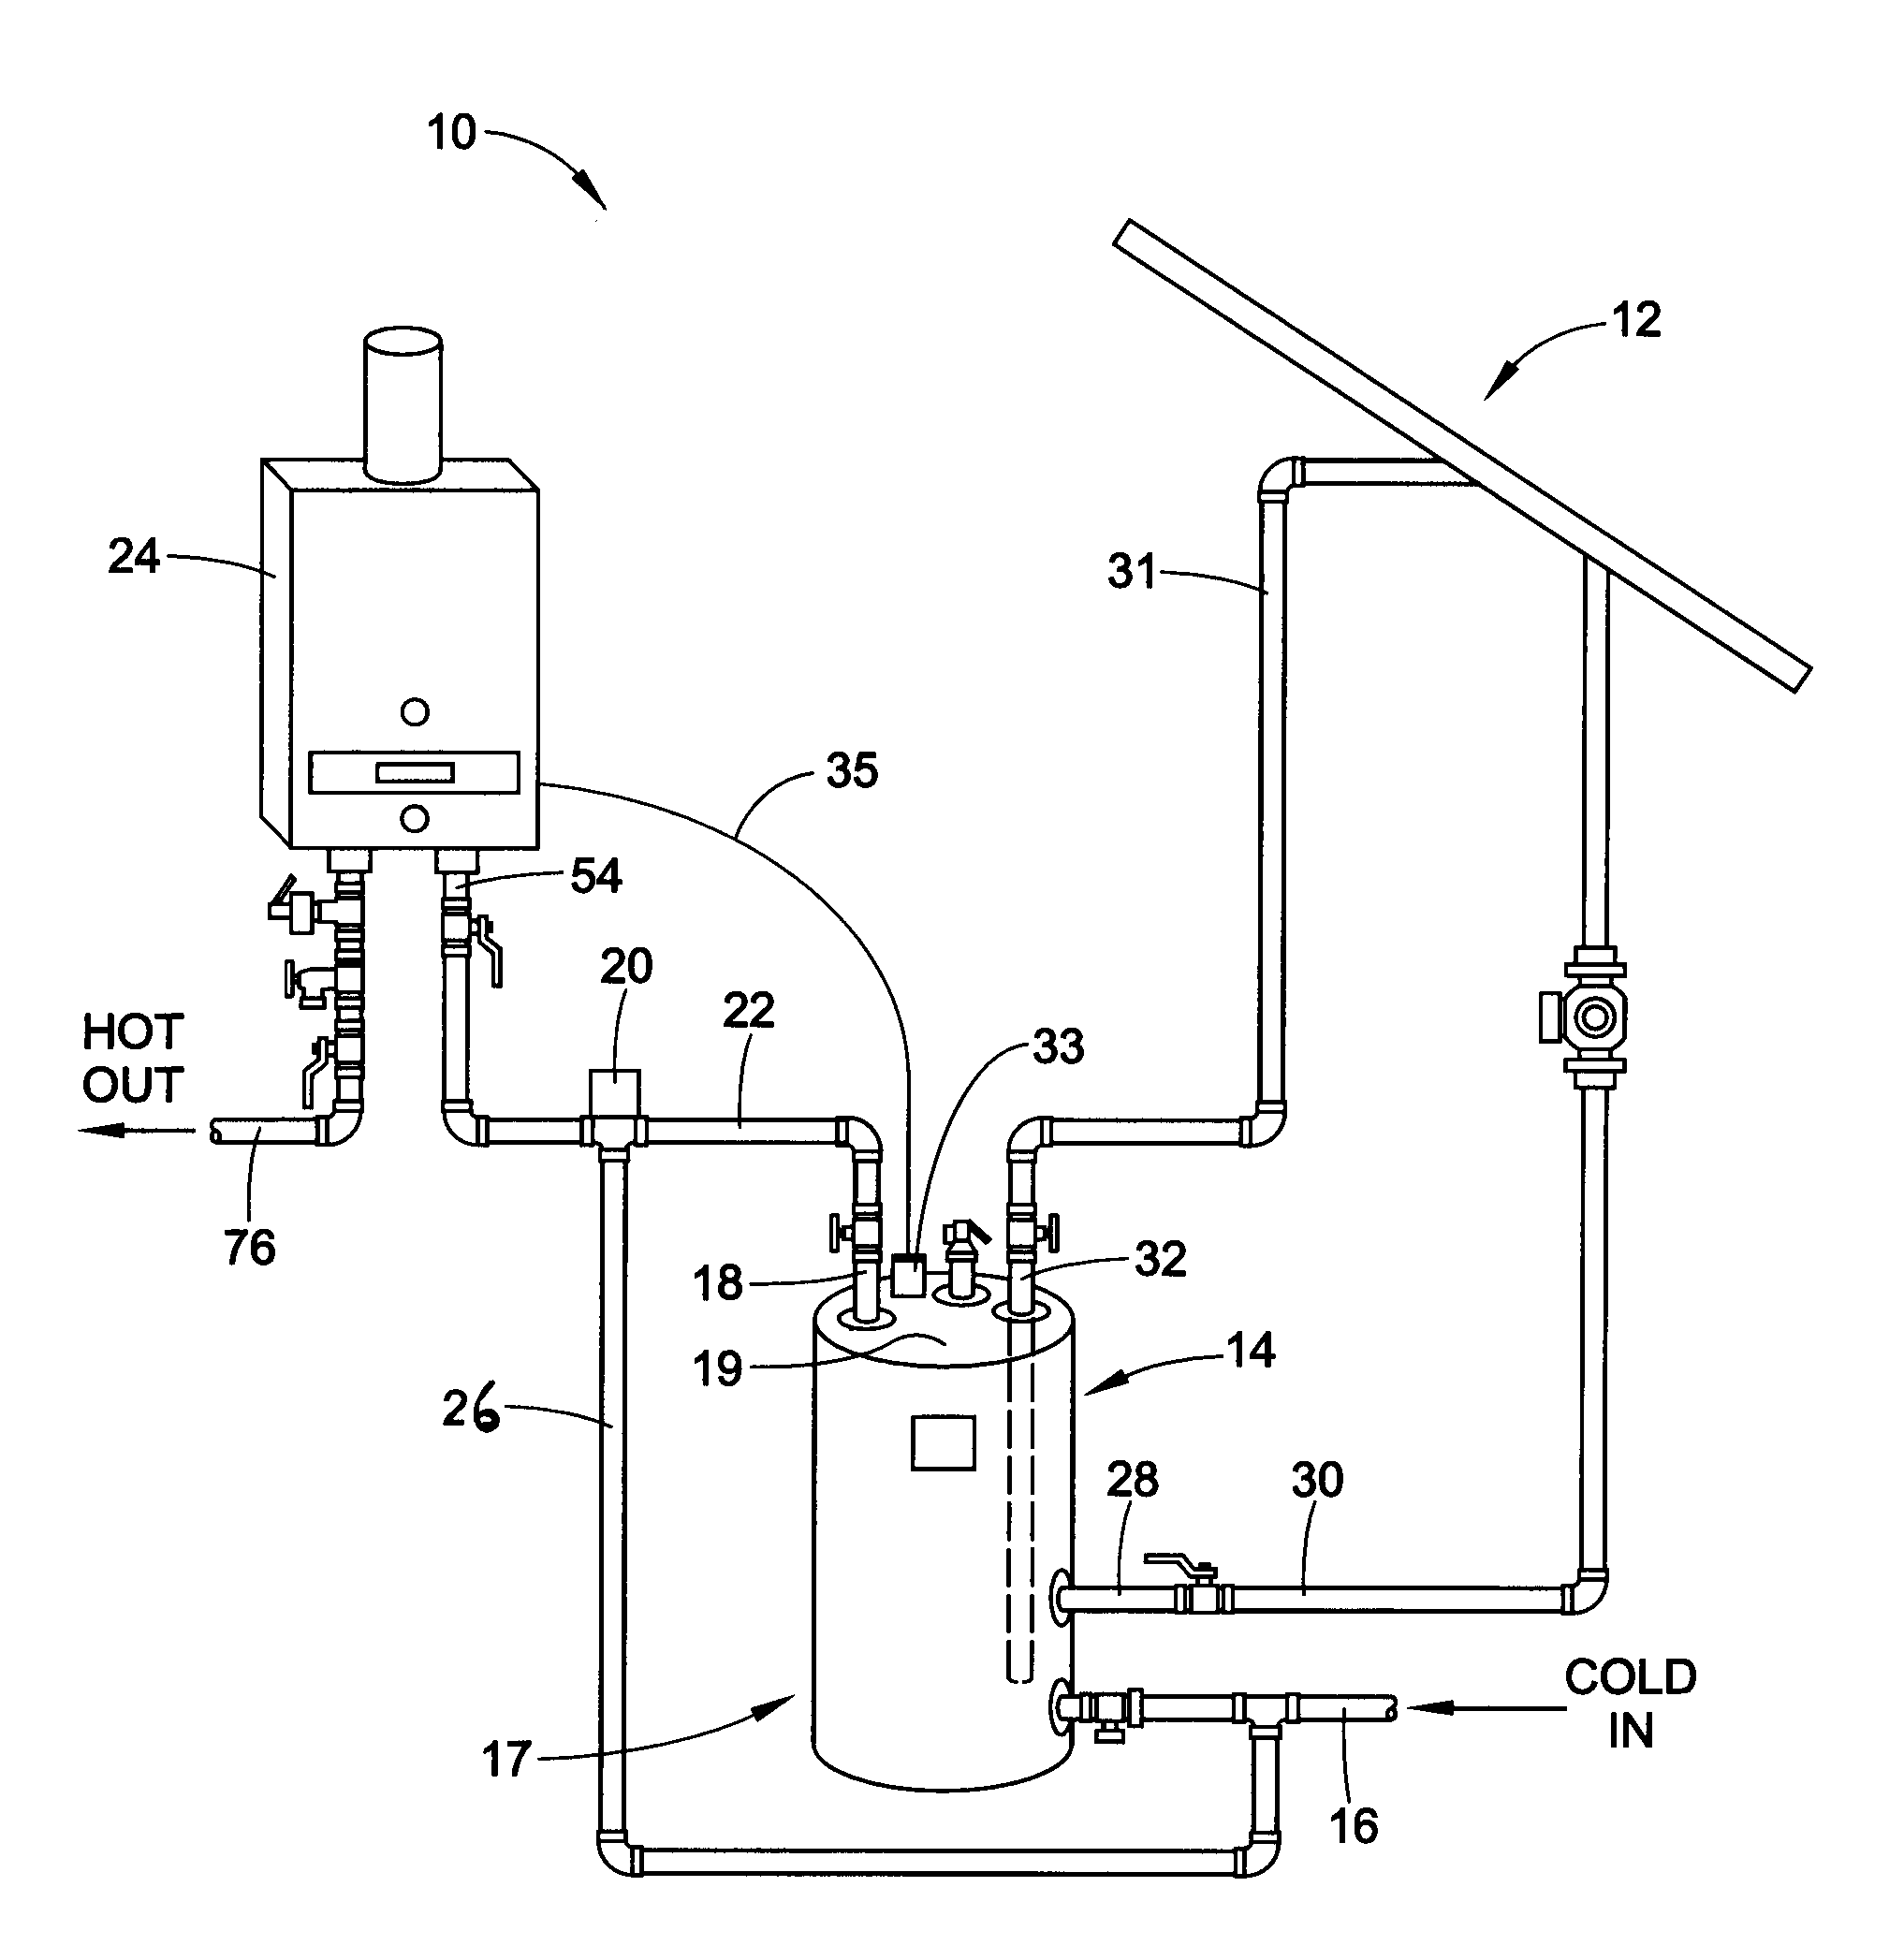 piping diagram for hot water storage tank water heater storage tank piping diagrams patent us20120060827 - control for a tankless water heater ... #4